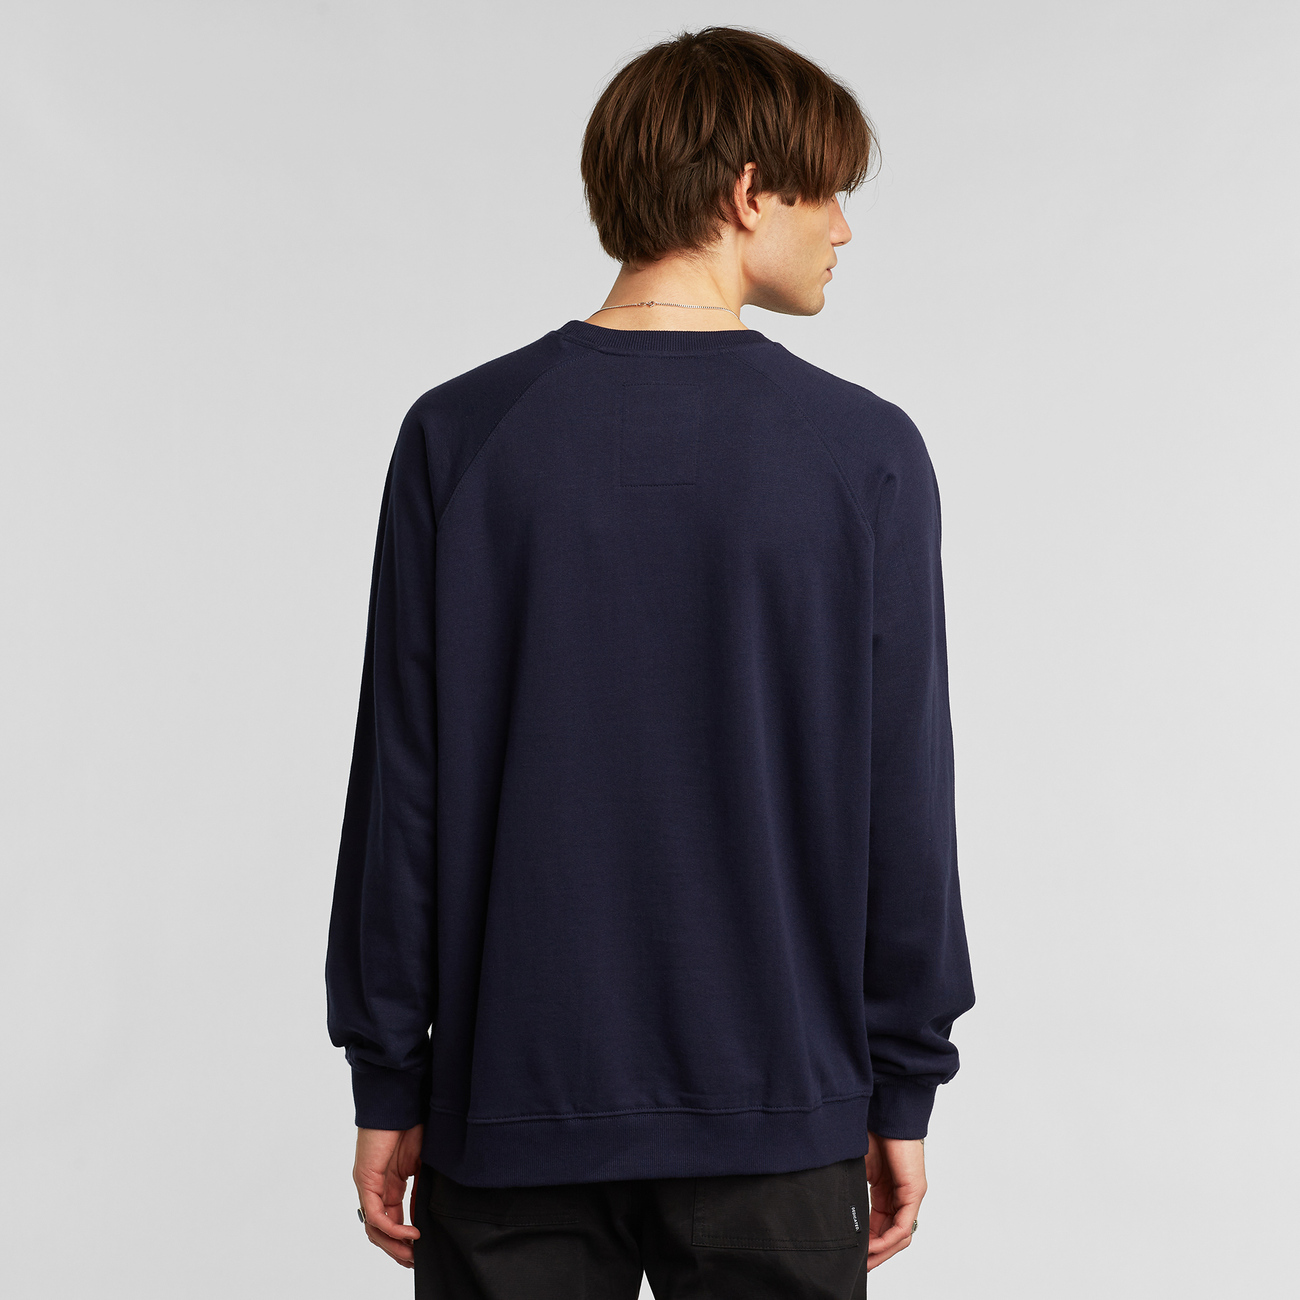 Sweatshirt Malmoe Stitched Wave Navy